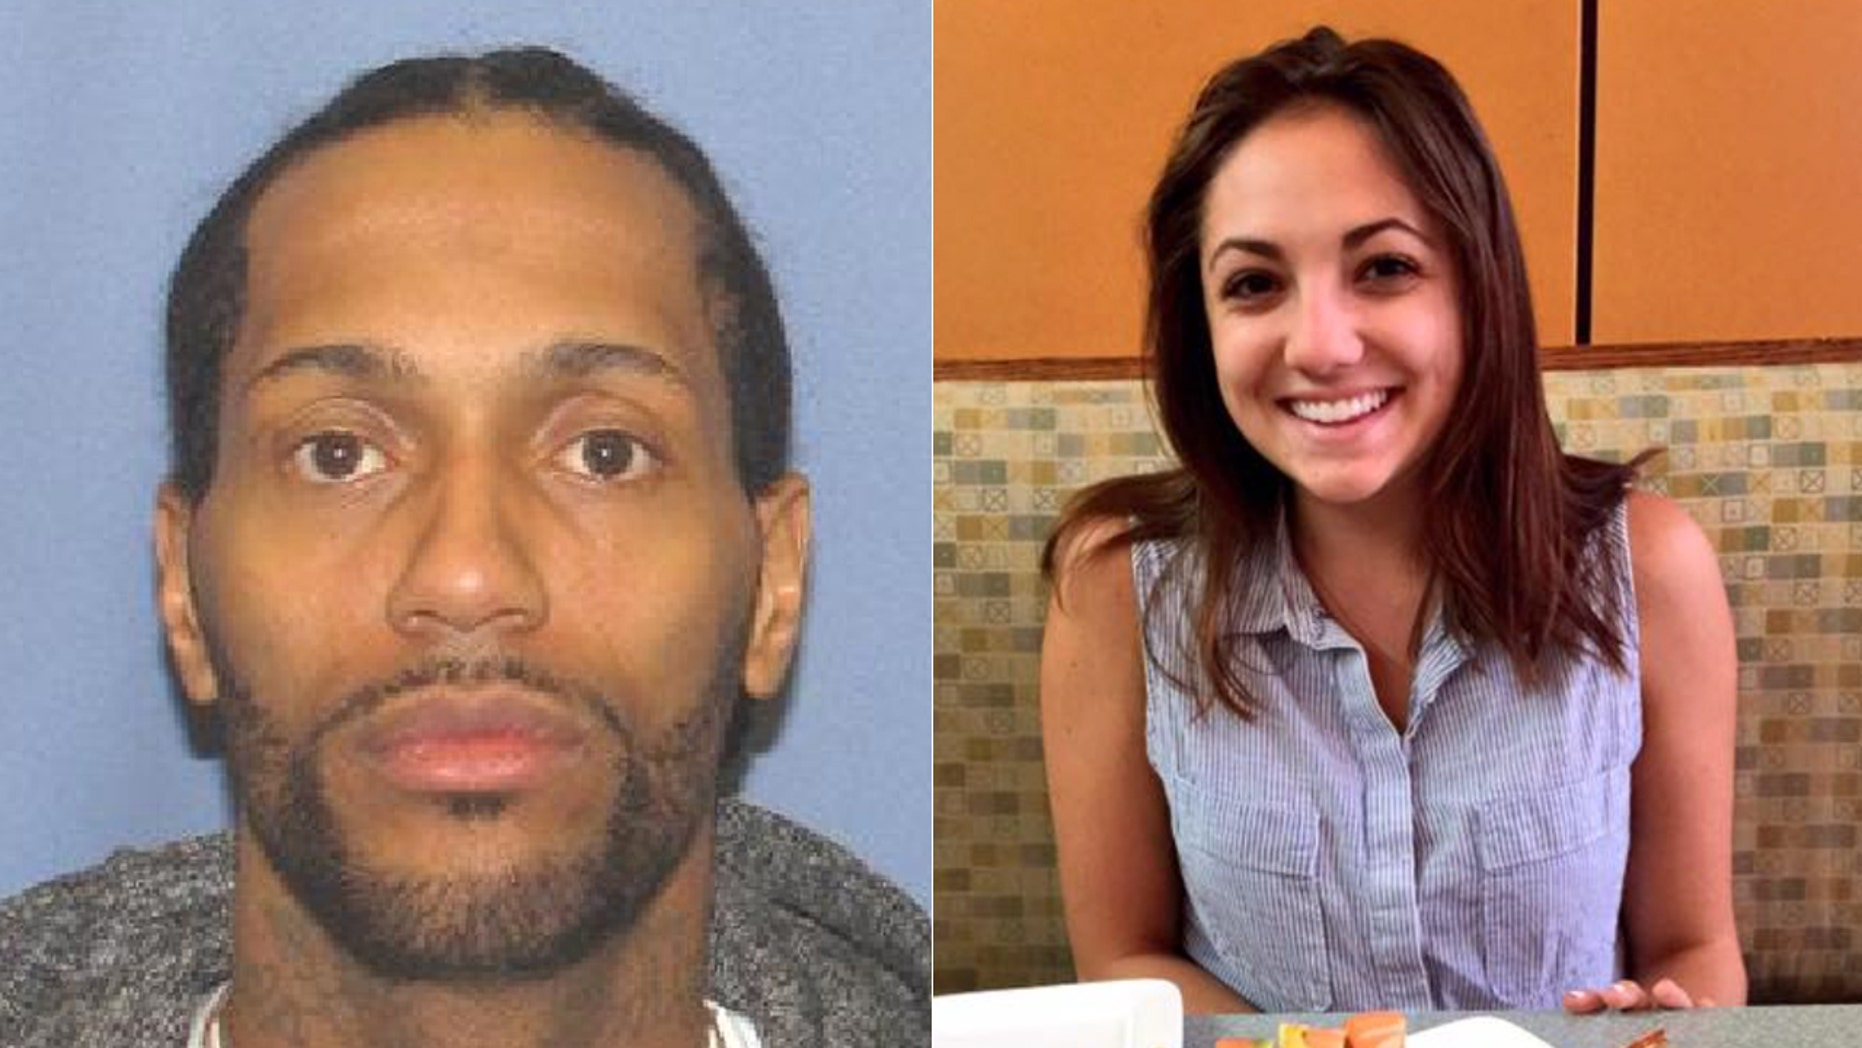 Brian Lee Golsby (left) was charged Saturday for the murder of Ohio State student Regan Tokes (right).